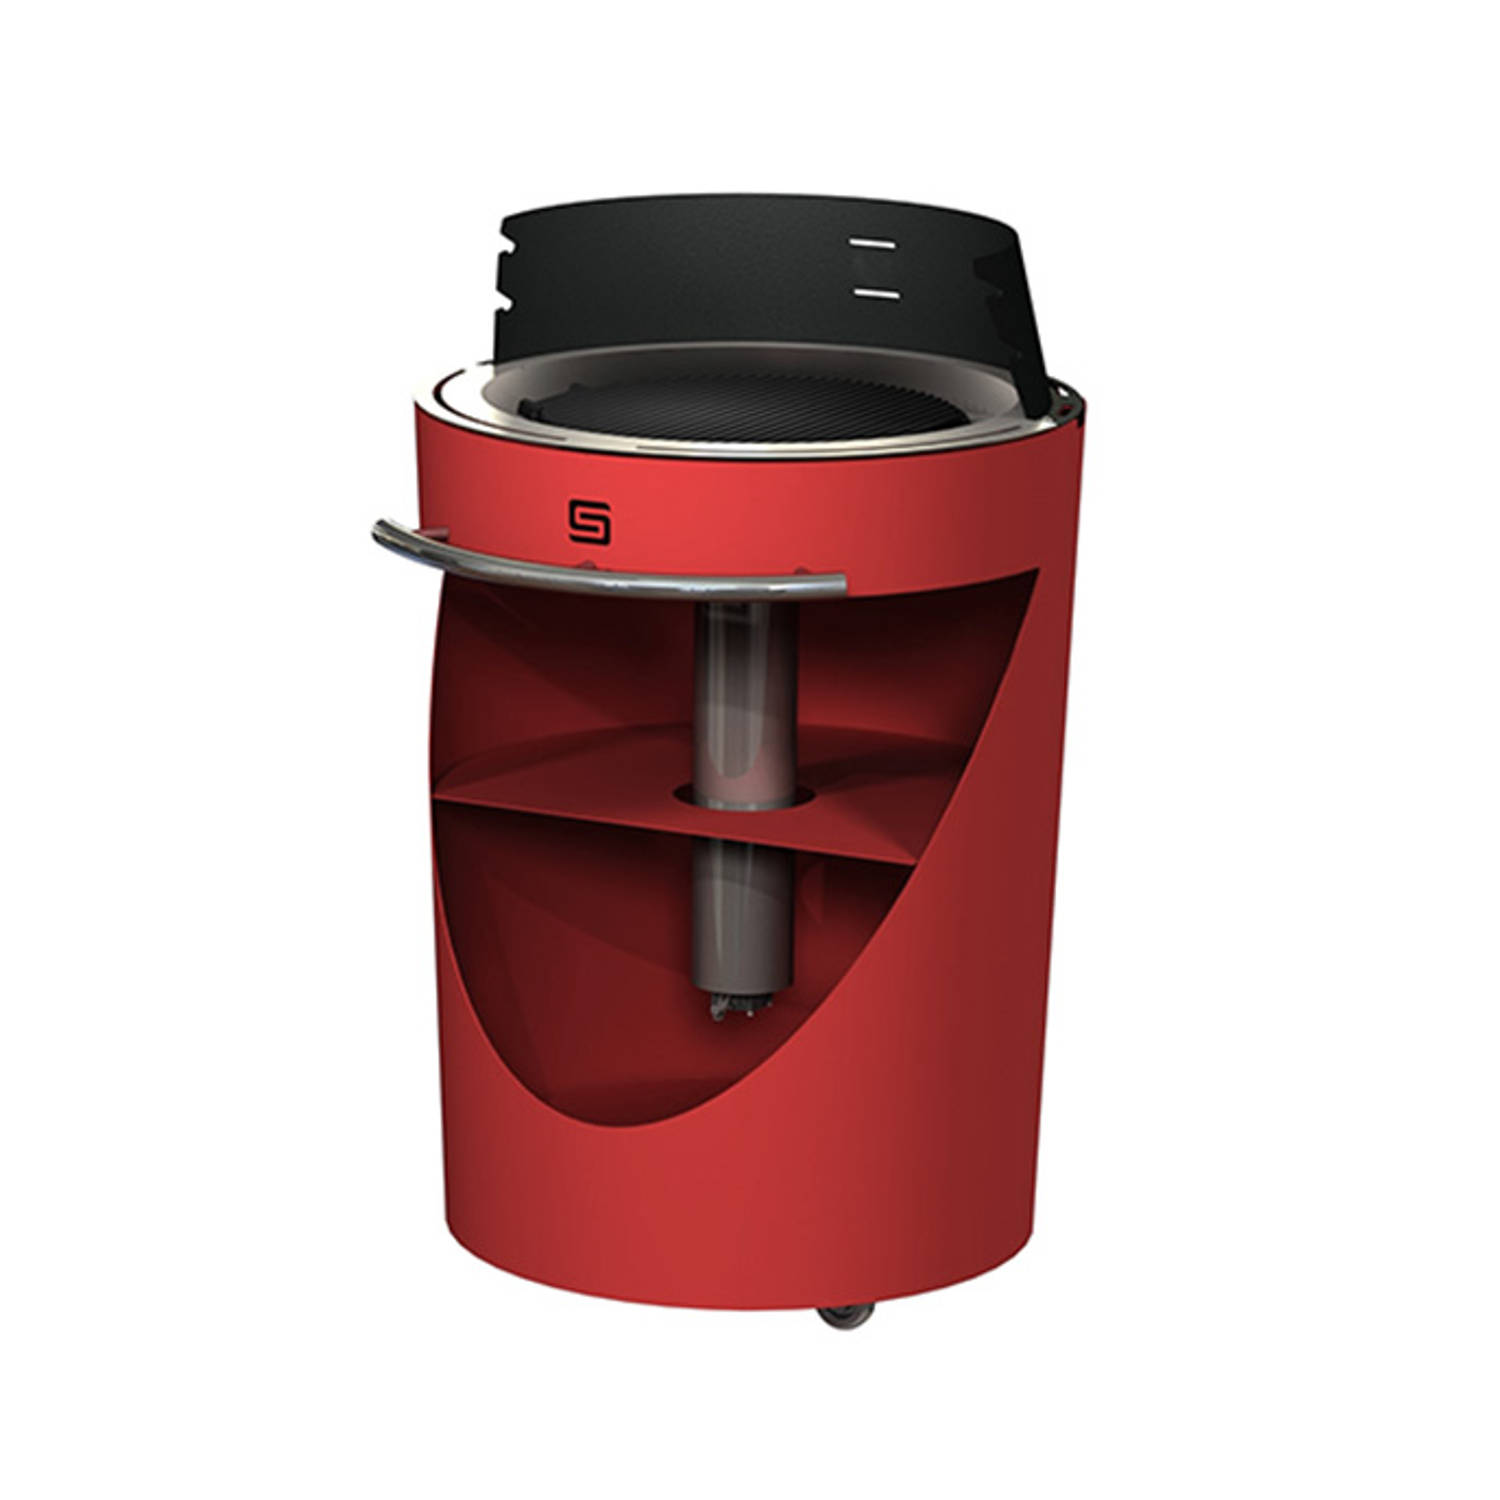 Sarom Fuoco - Pelletbarbecue - King Compact - Rood